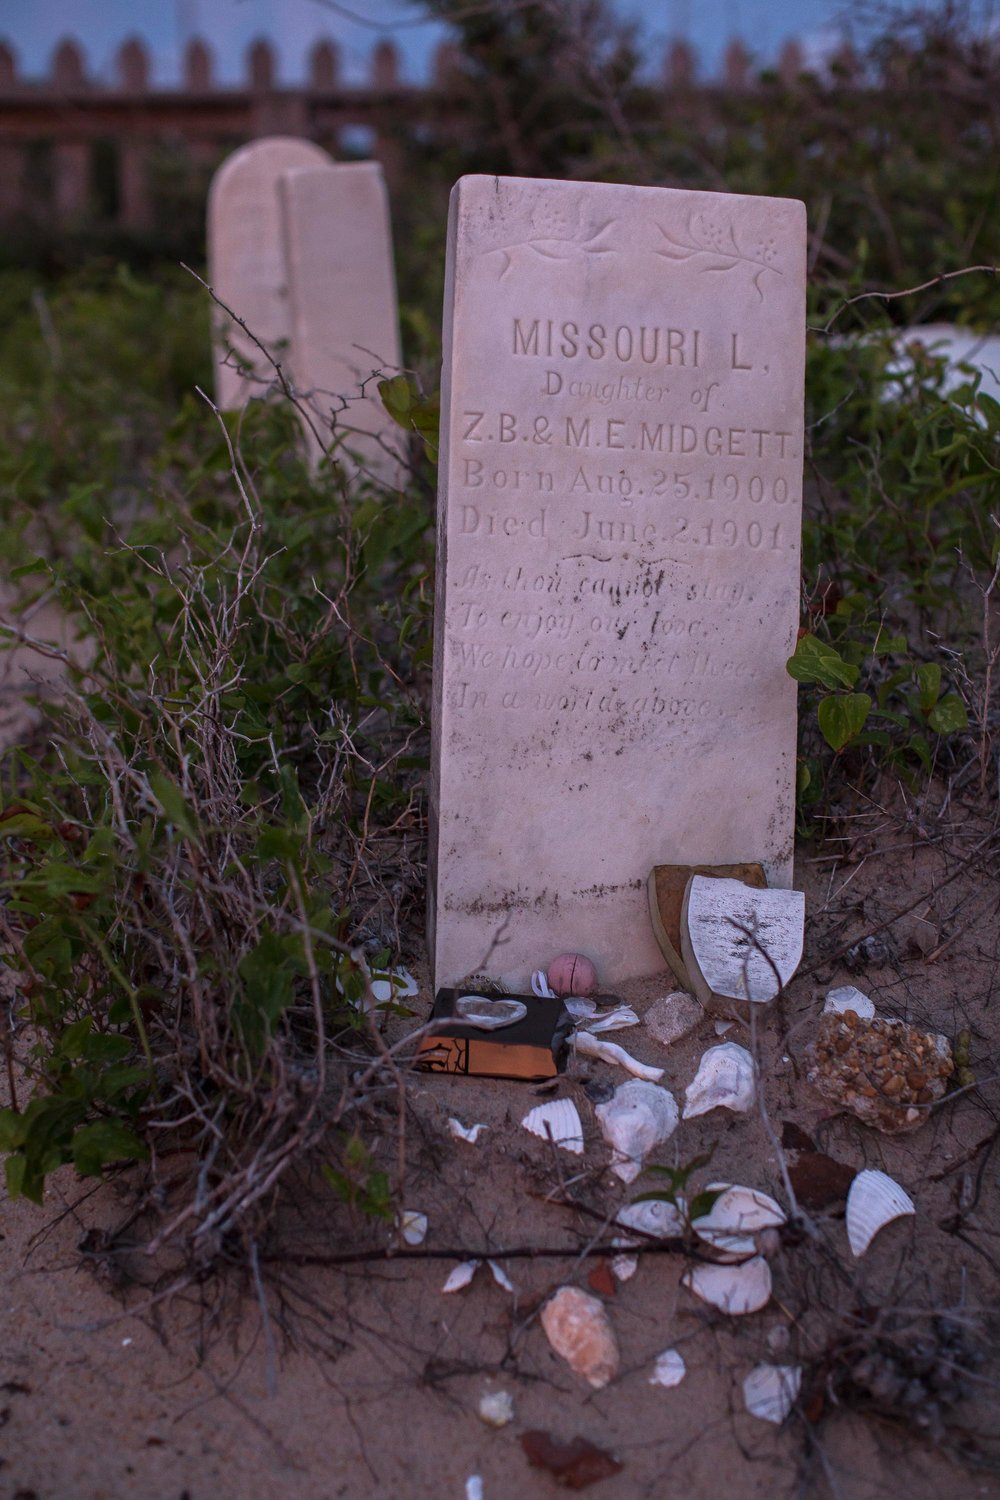 Tributes left behind on the grave of Missouri L. Midgett, who died at 10-months old in 1901.